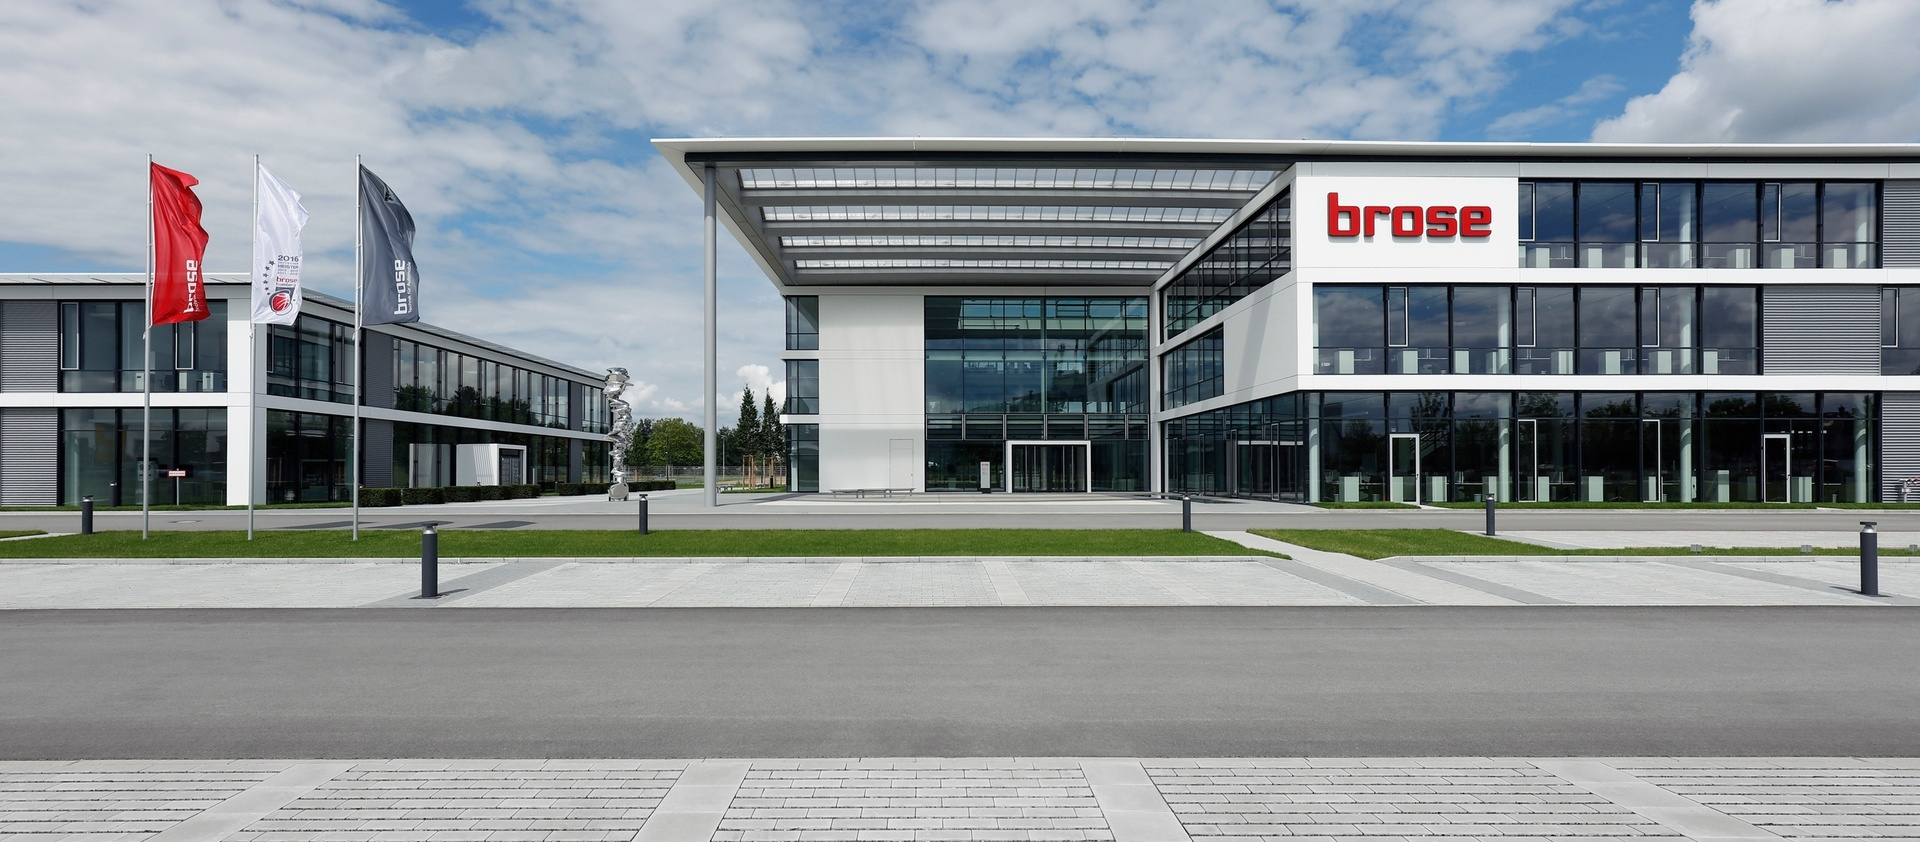 Brose Group Reveals Ambitious Investment Plans to Offset Sluggish Automotive Market